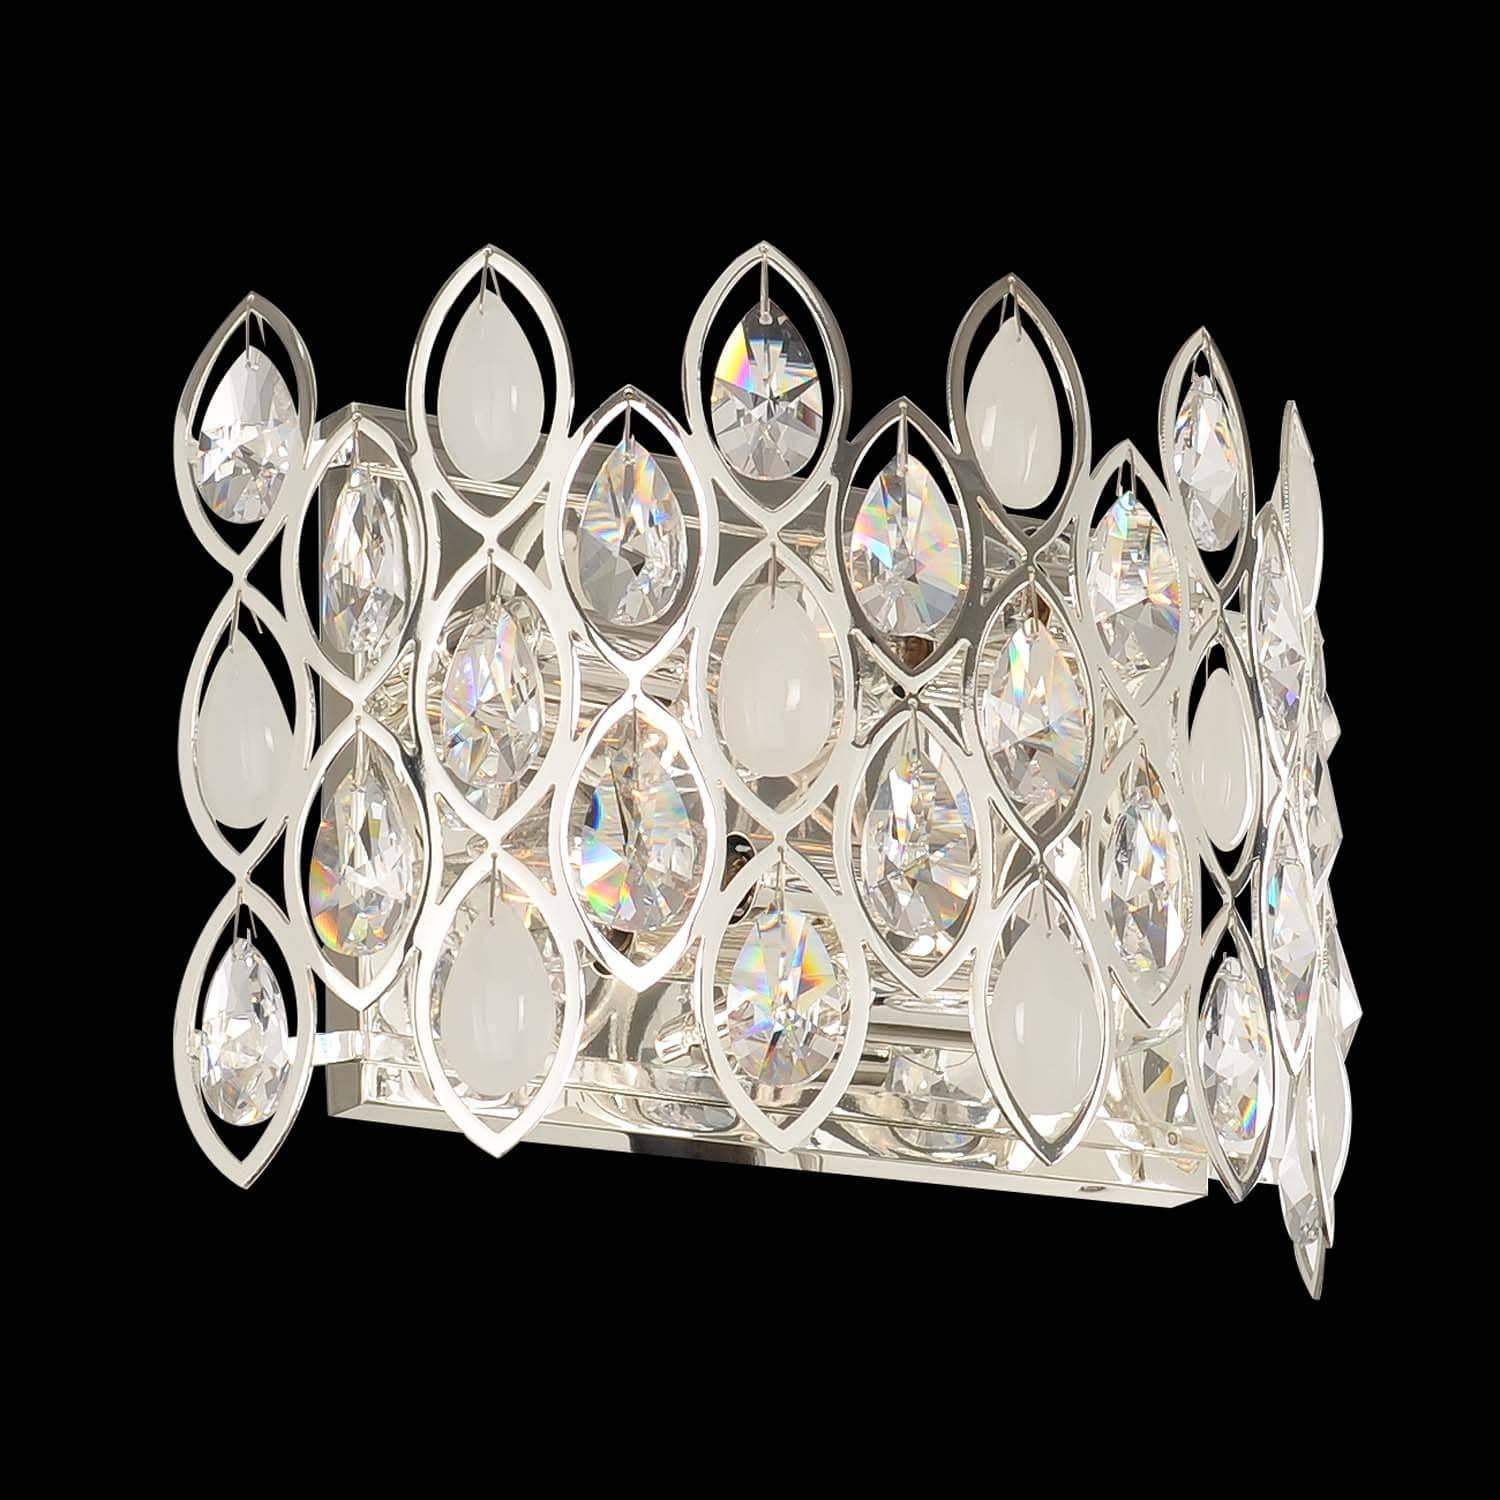 Allegri by Kalco Lighting Wall Sconces Silver / Firenze Clear Prive 4 Light Wall Bracket (Horizontal) From Allegri by Kalco Lighting 028721